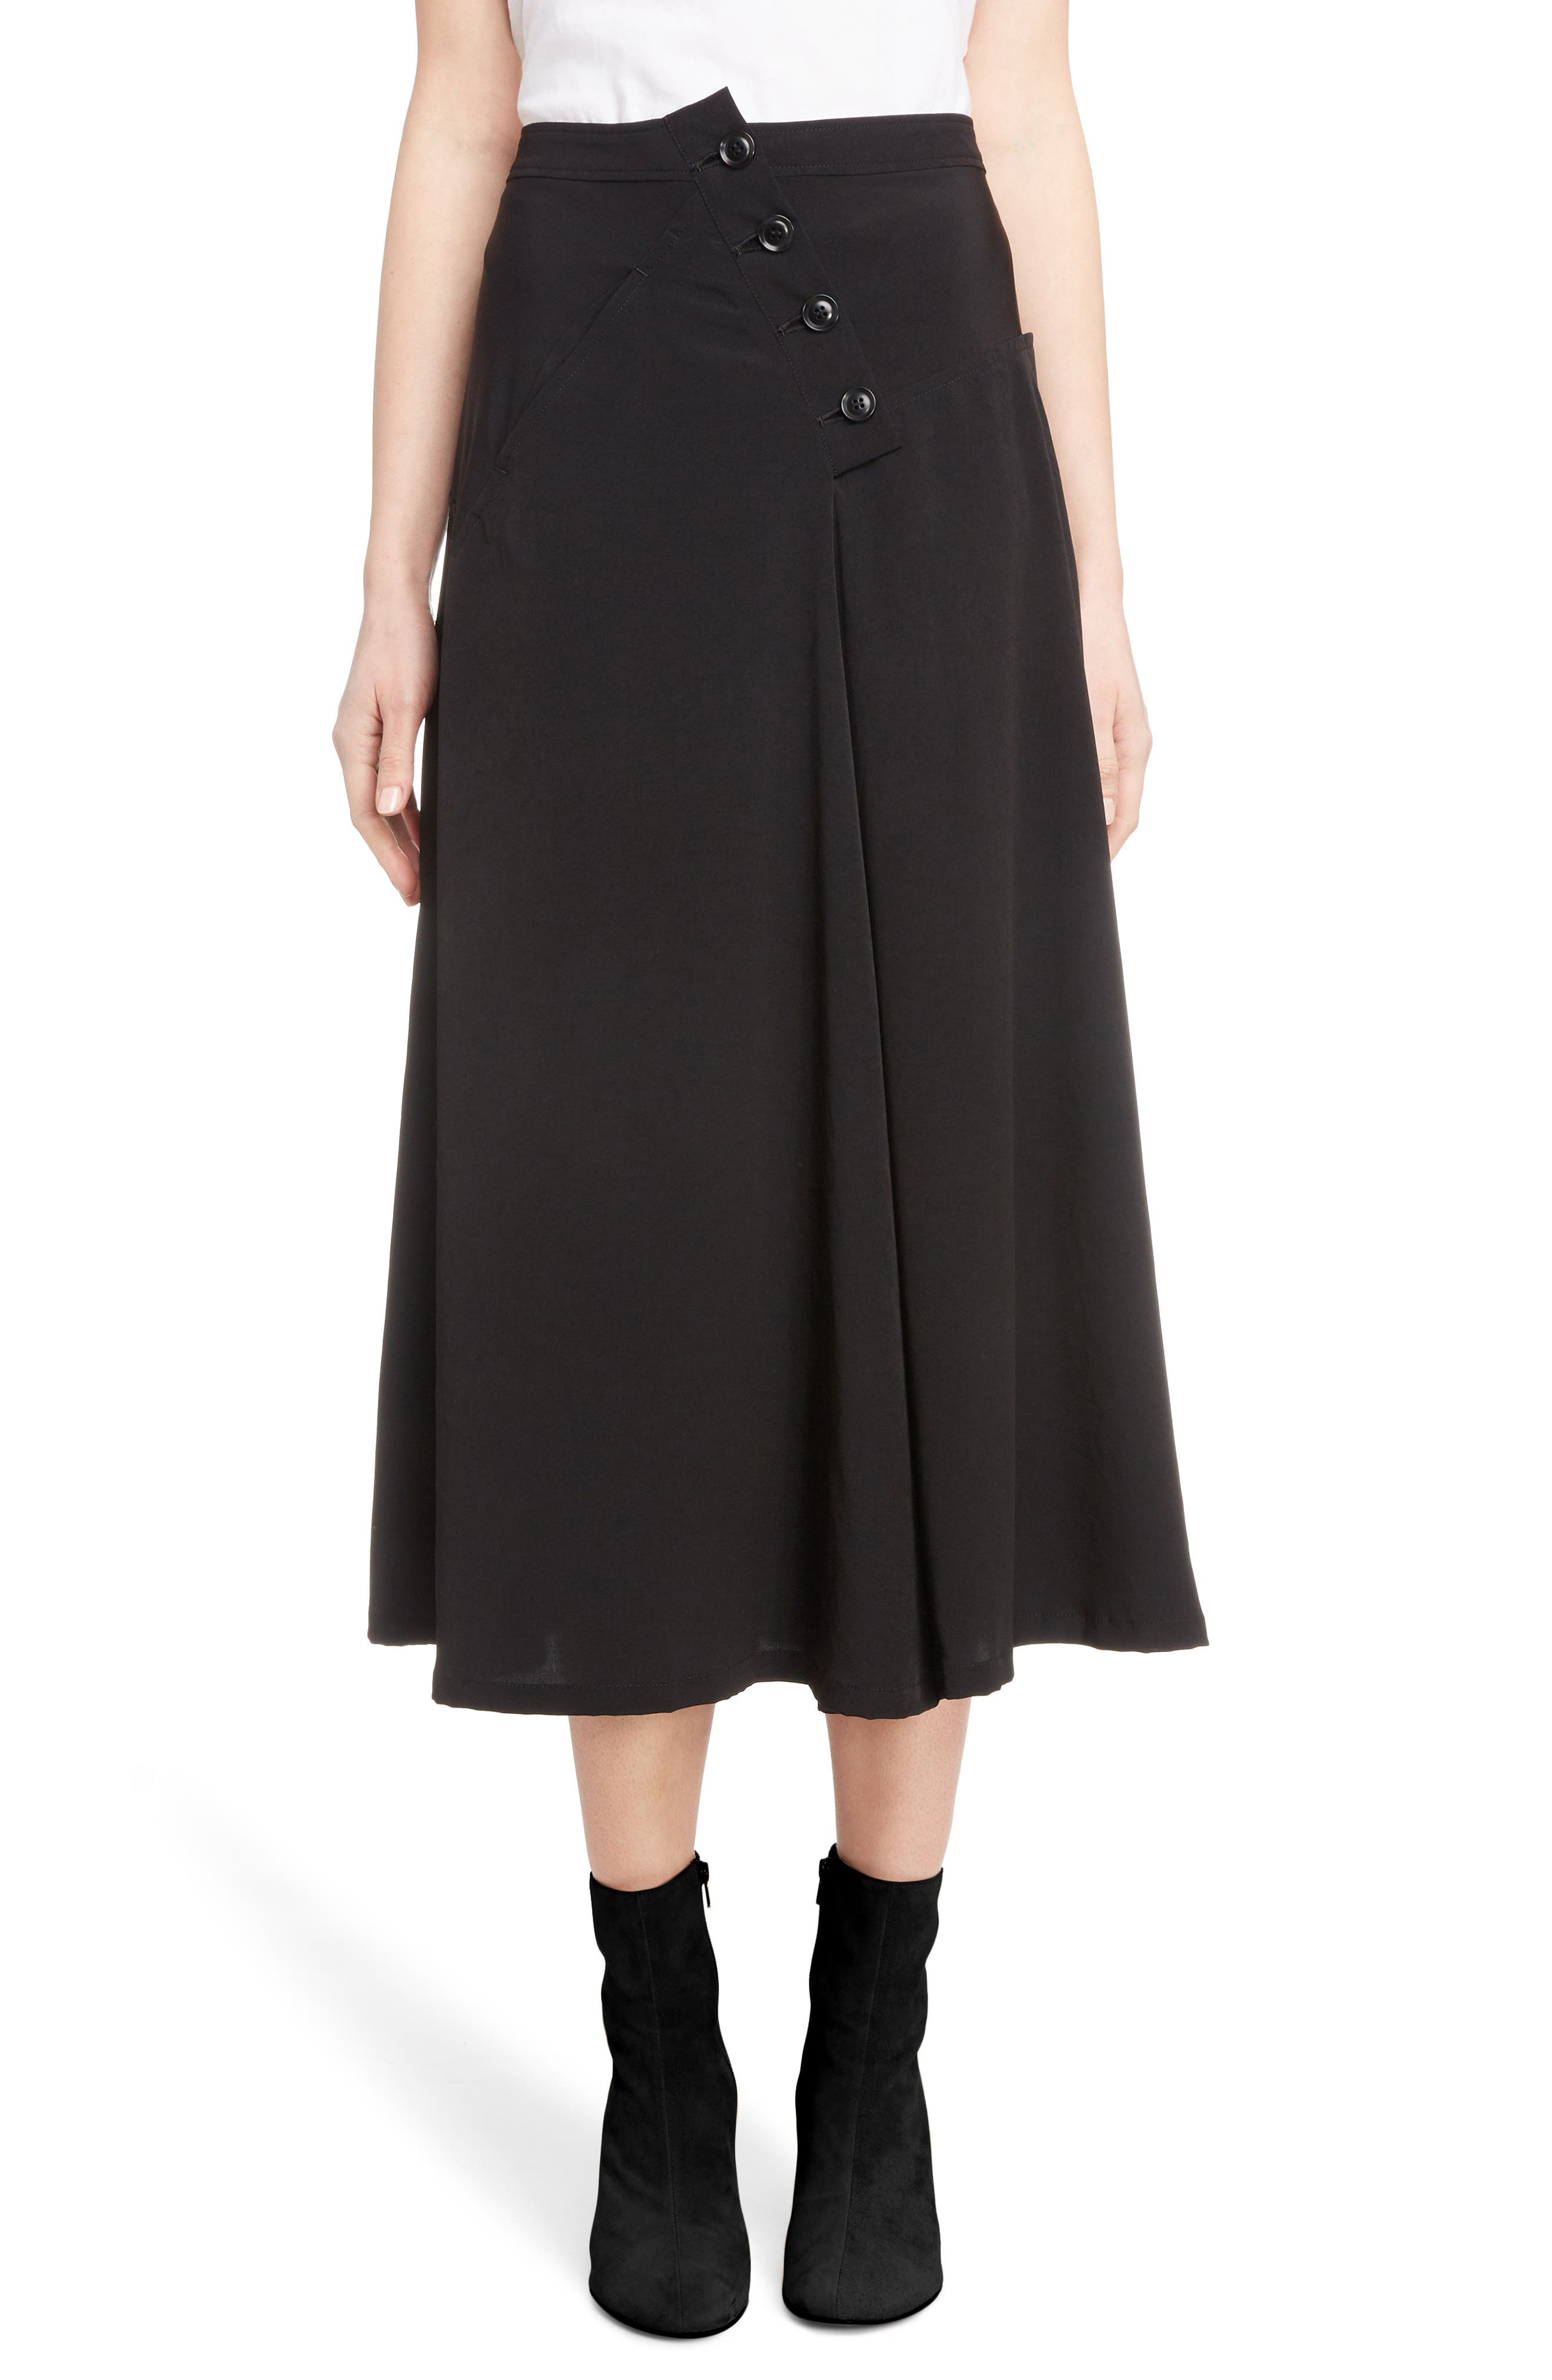 Y's BUTTON DETAIL A-LINE SKIRT